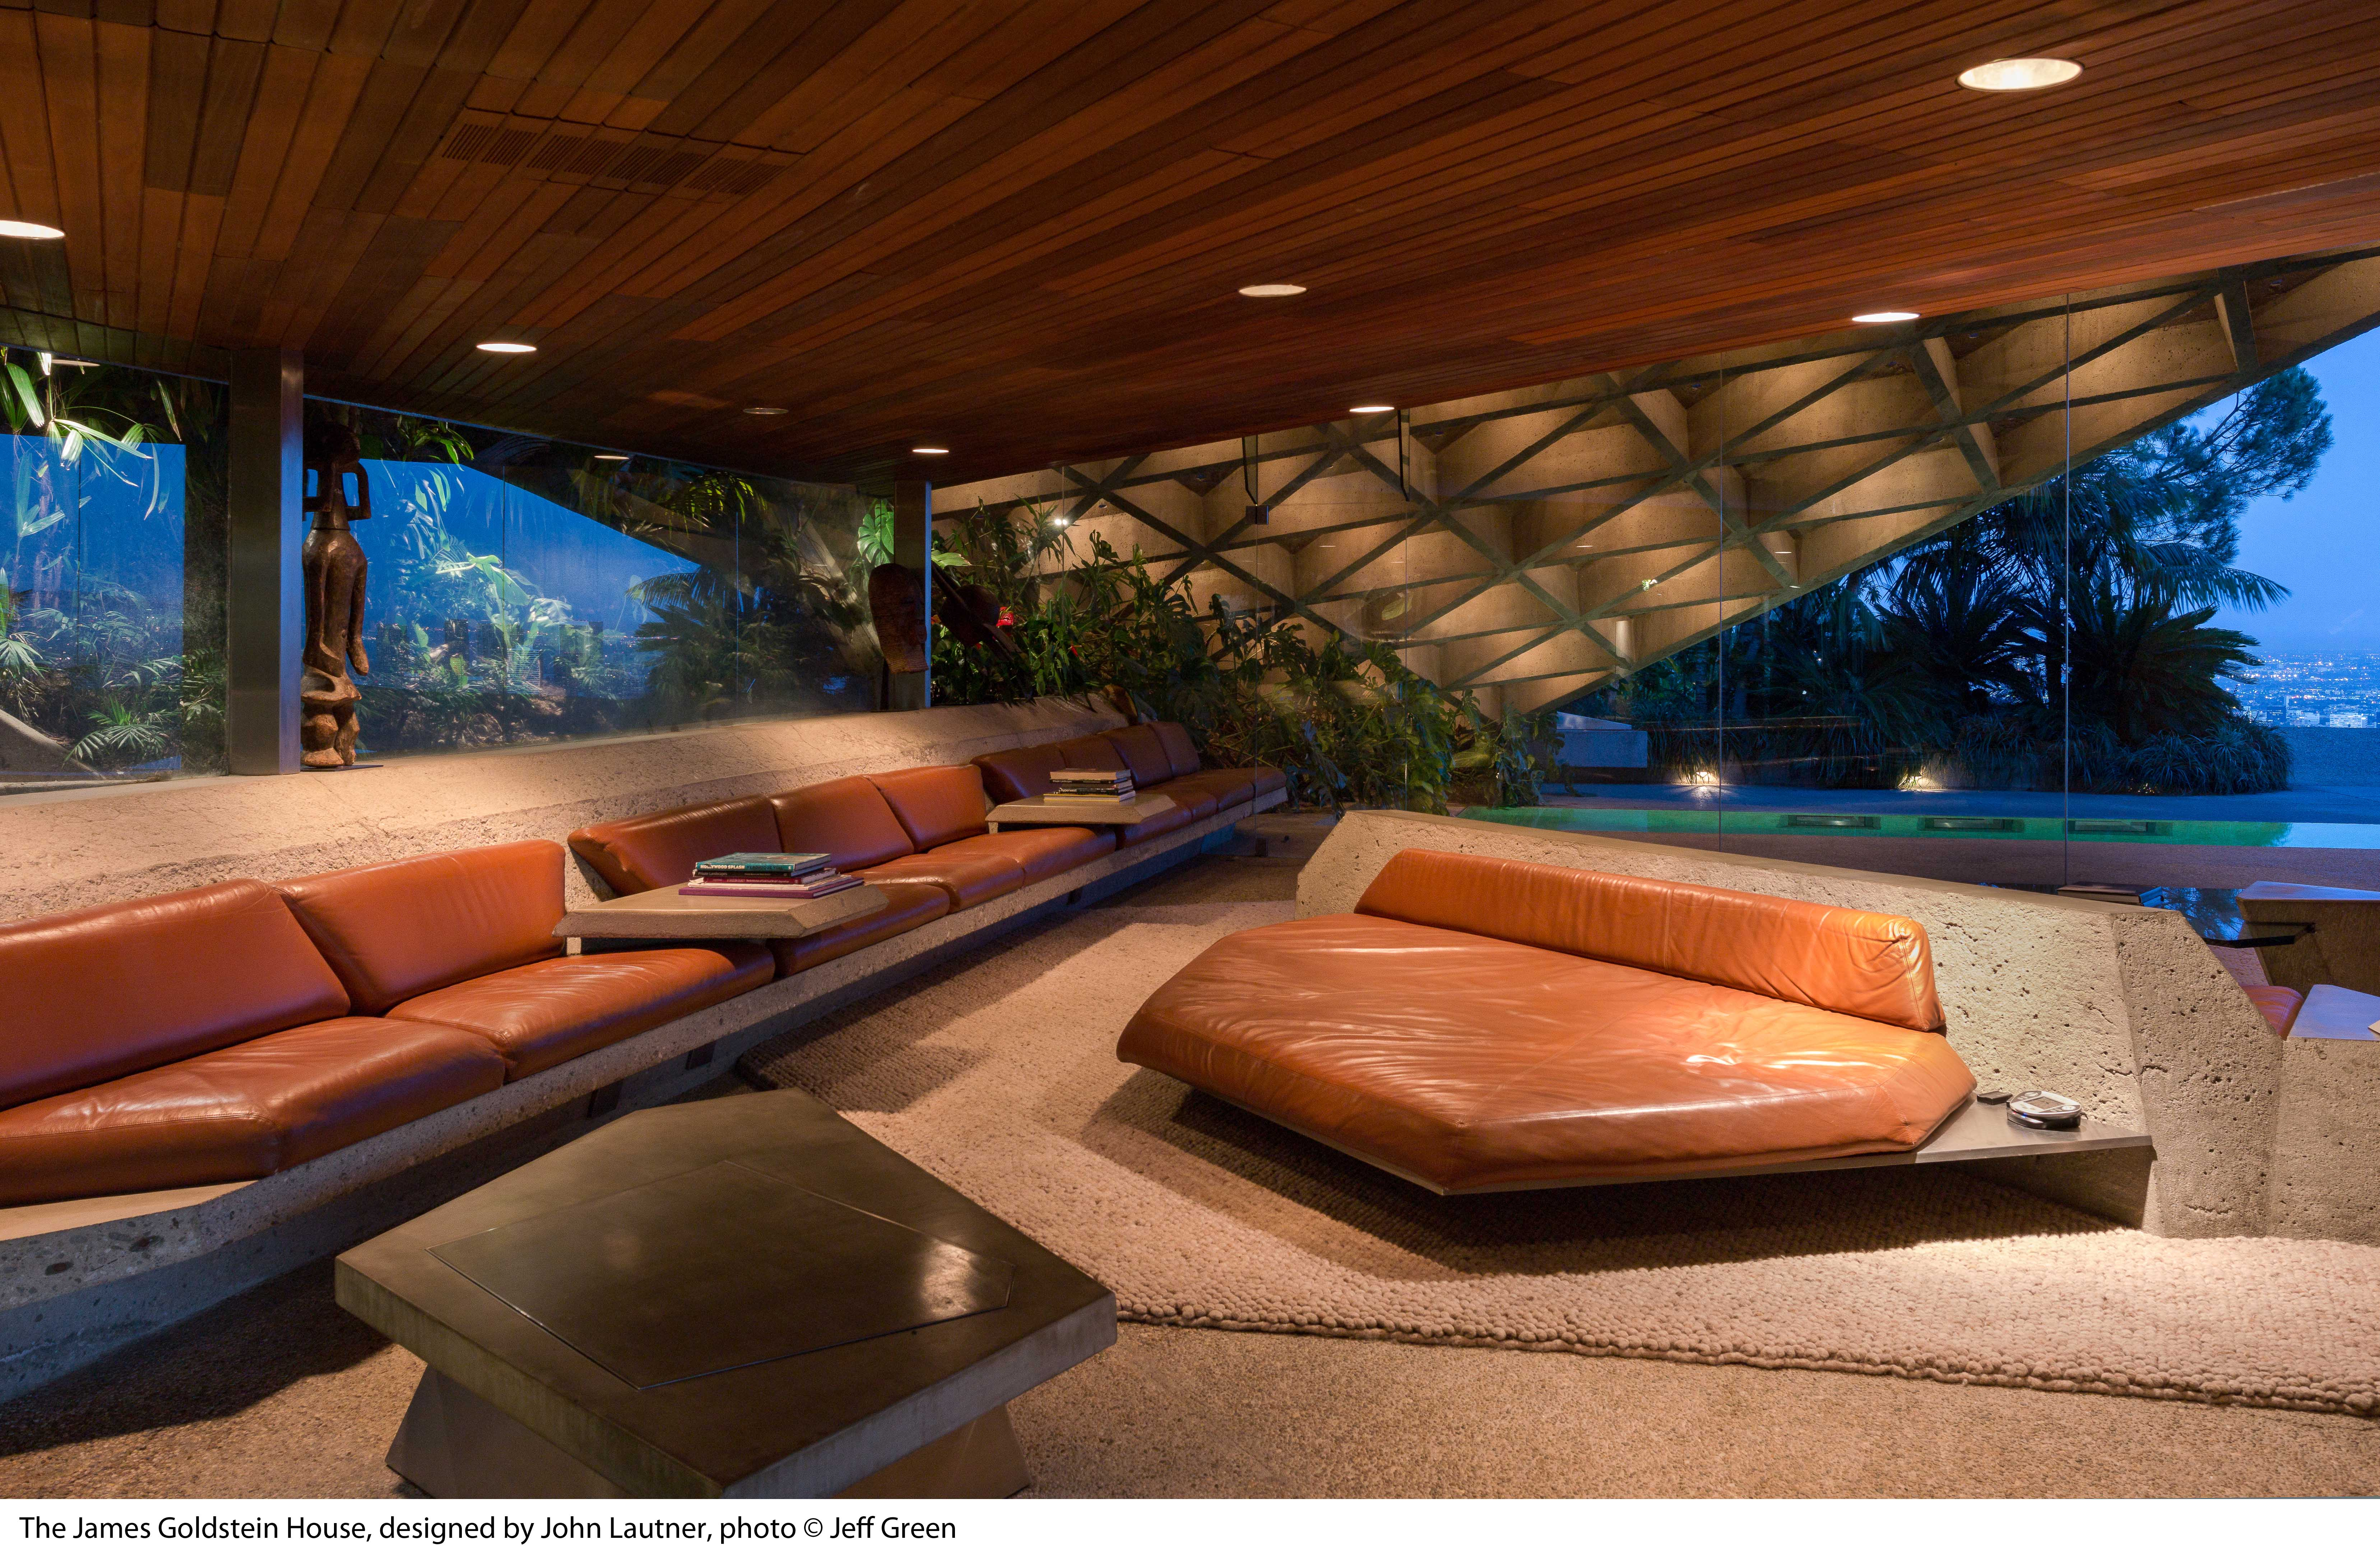 Lautners Otherworldly on For More Details About This House Contact Home Design